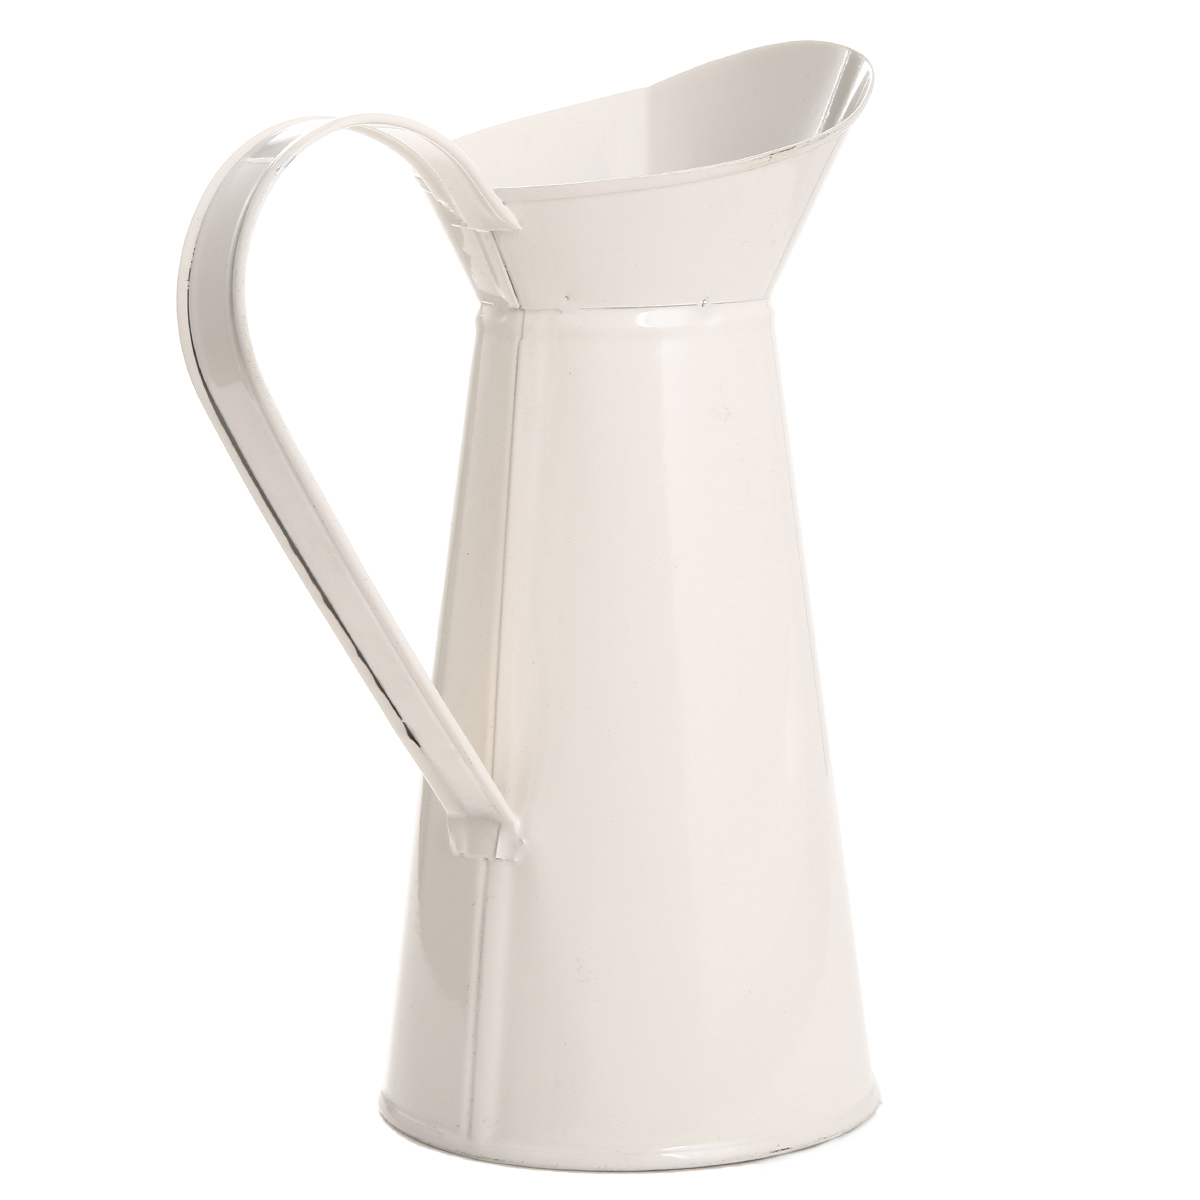 1PC Vintage Tall Metal Shabby Chic Cream Vase Enamel Pitcher Jug Flower Container For Wedding Home Decor